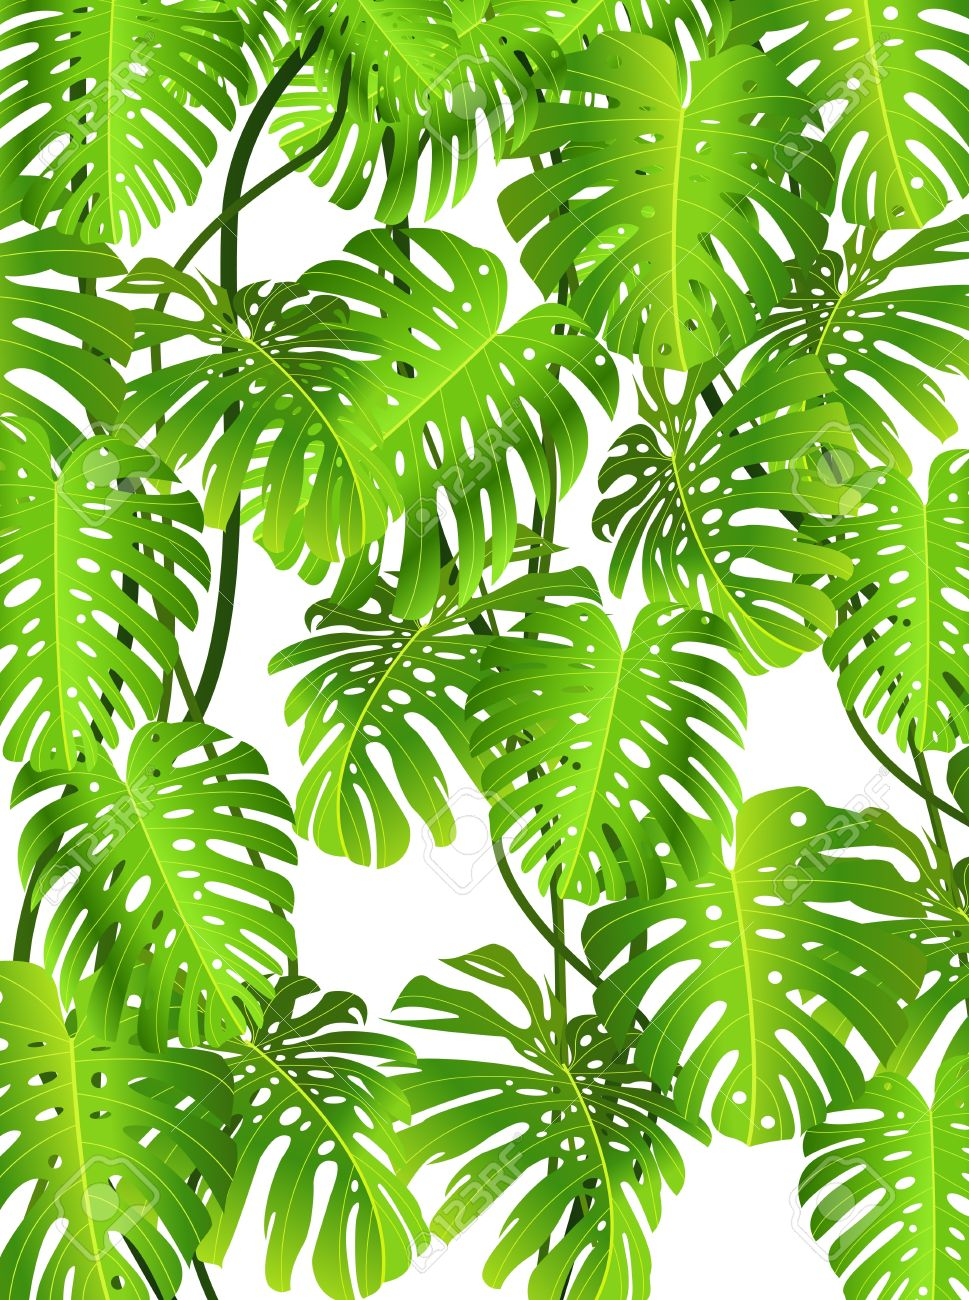 Tropical background clipart 6 » Clipart Station.